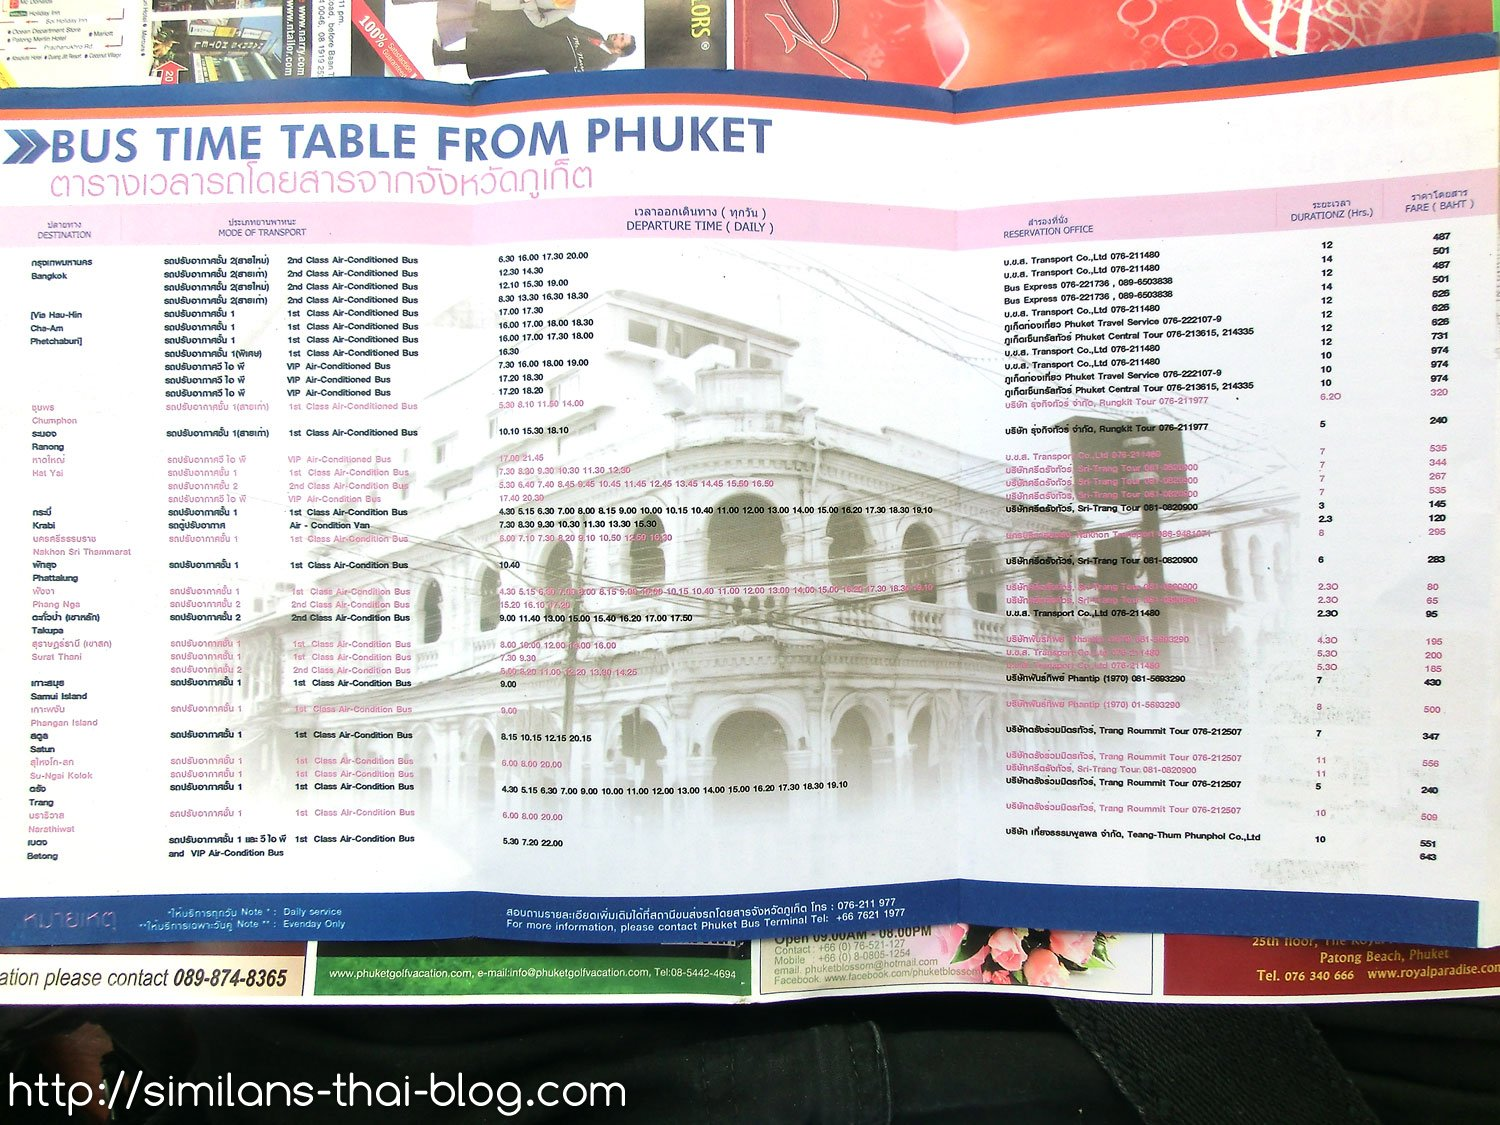 bus-time-table-from-phuket